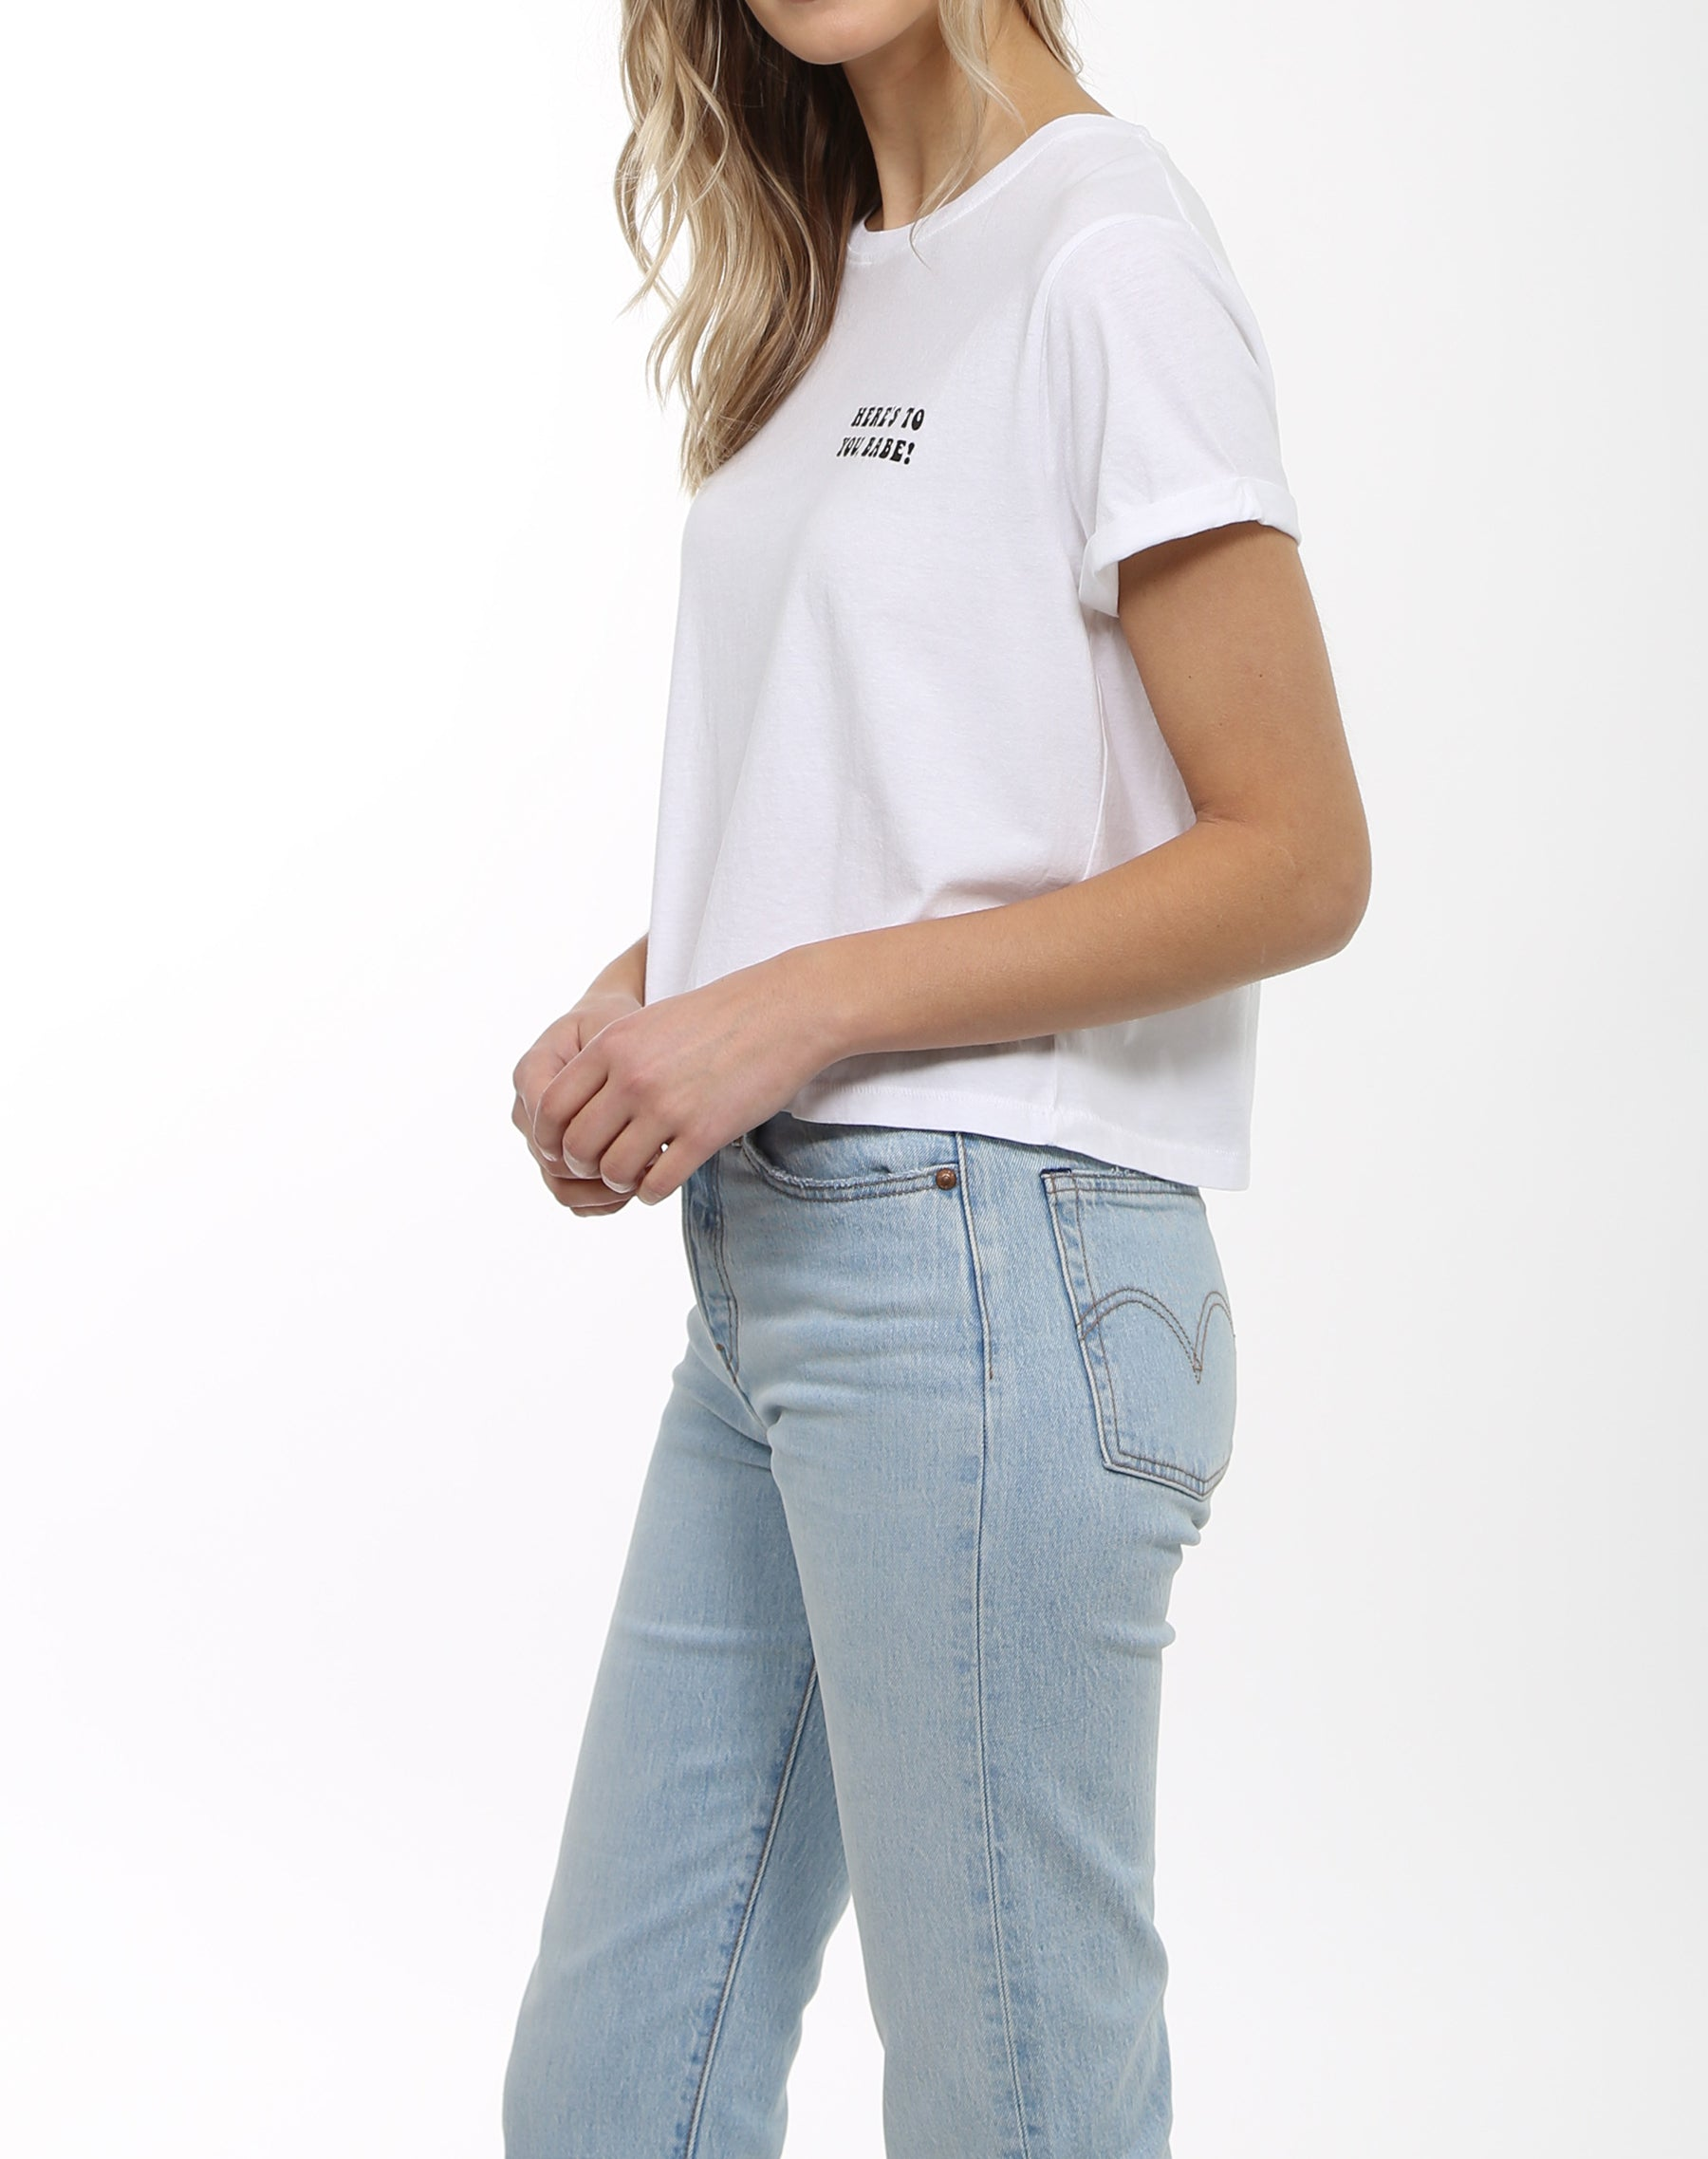 Side photo of the Here's to You Babe crew neck tee in white by Brunette the Label.